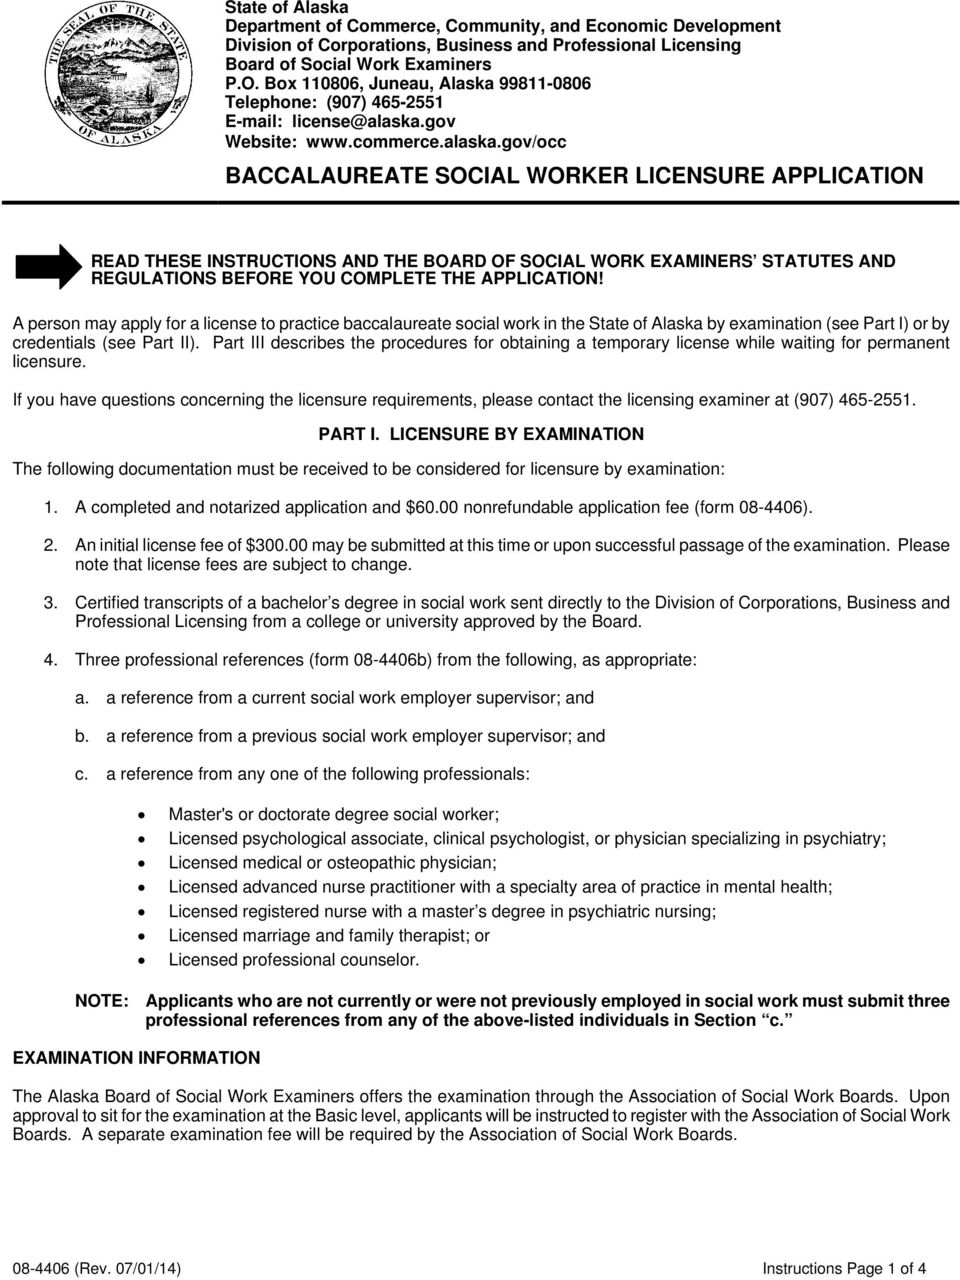 gov/occ BACCALAUREATE SOCIAL WORKER LICENSURE APPLICATION READ THESE INSTRUCTIONS AND THE BOARD OF SOCIAL WORK EXAMINERS STATUTES AND REGULATIONS BEFORE YOU COMPLETE THE APPLICATION!